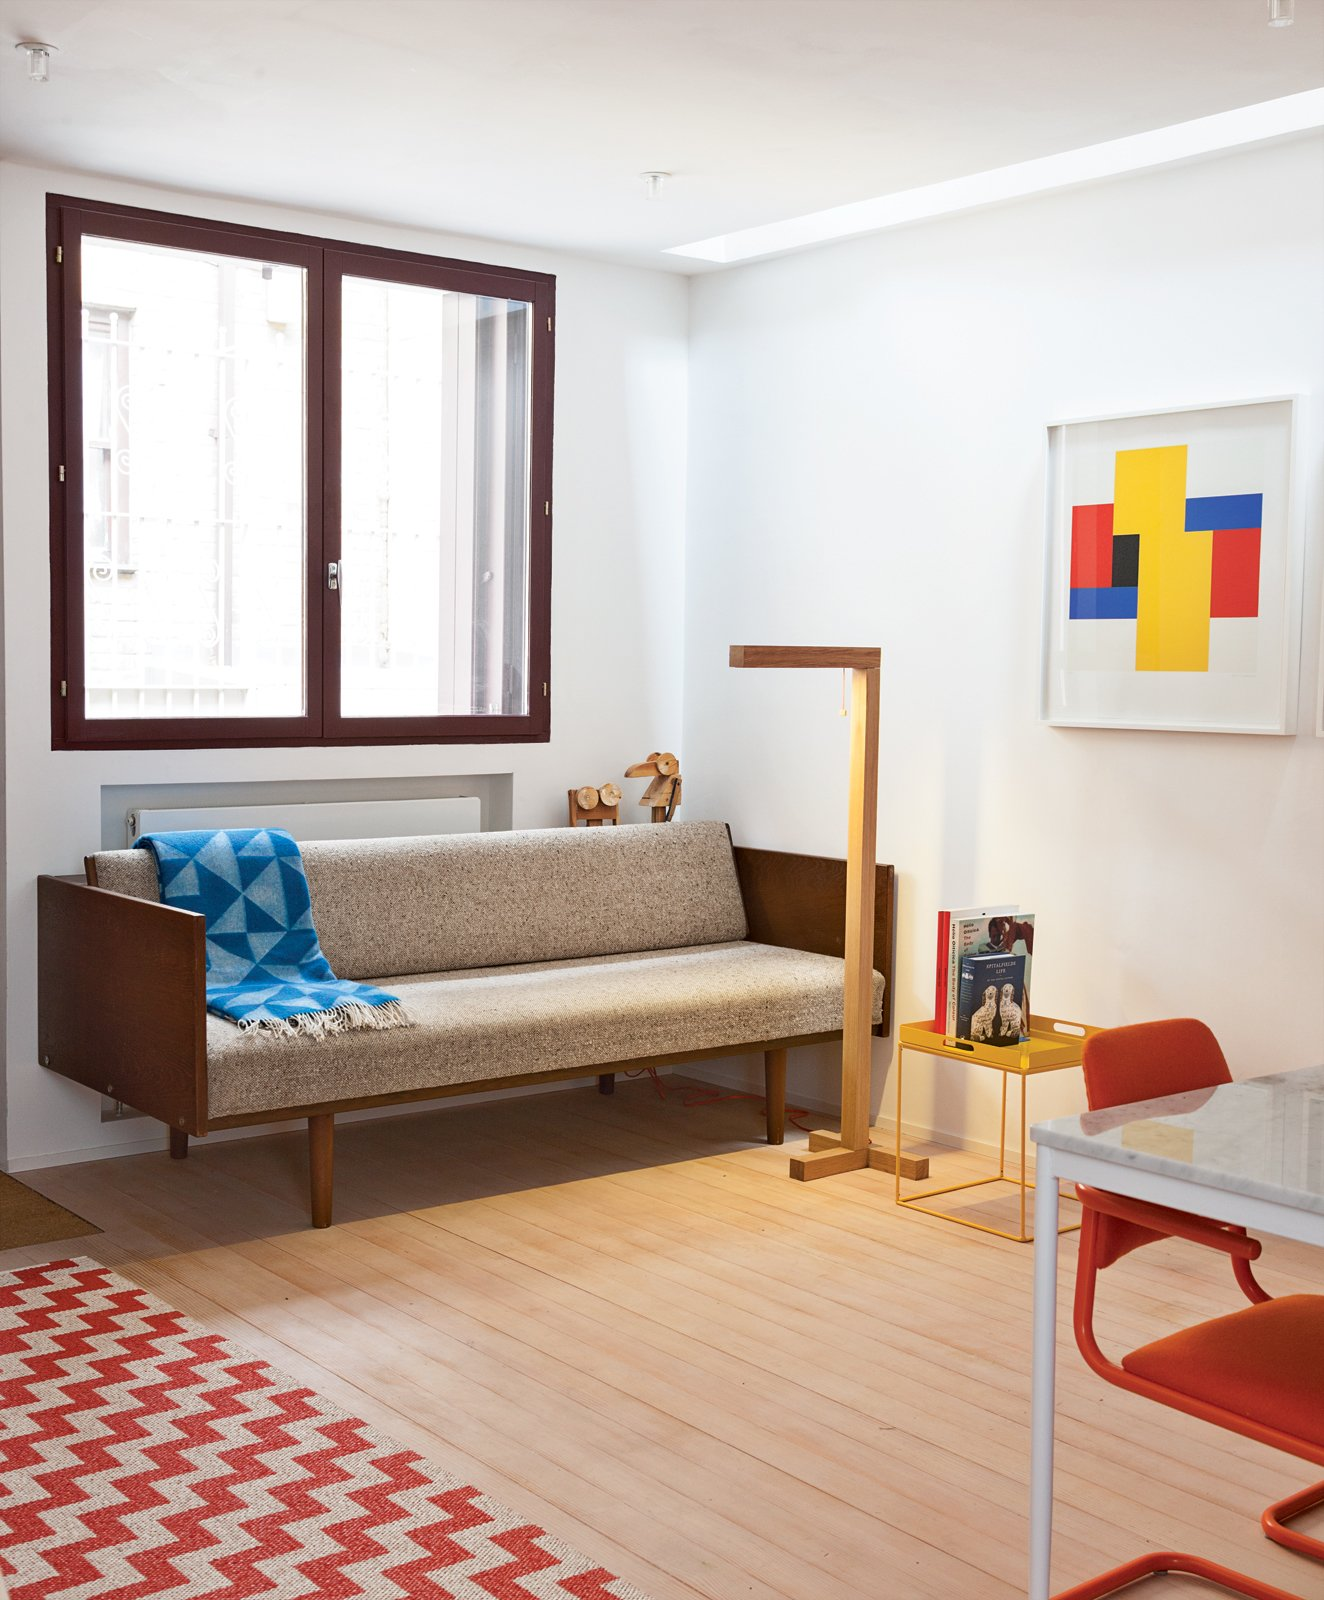 This London guesthouse's primary colored decor is centered around an abstract painting. Photo by Ben Anders.  Photo 3 of 10 in A Colorful, Custom-Built Guesthouse in London